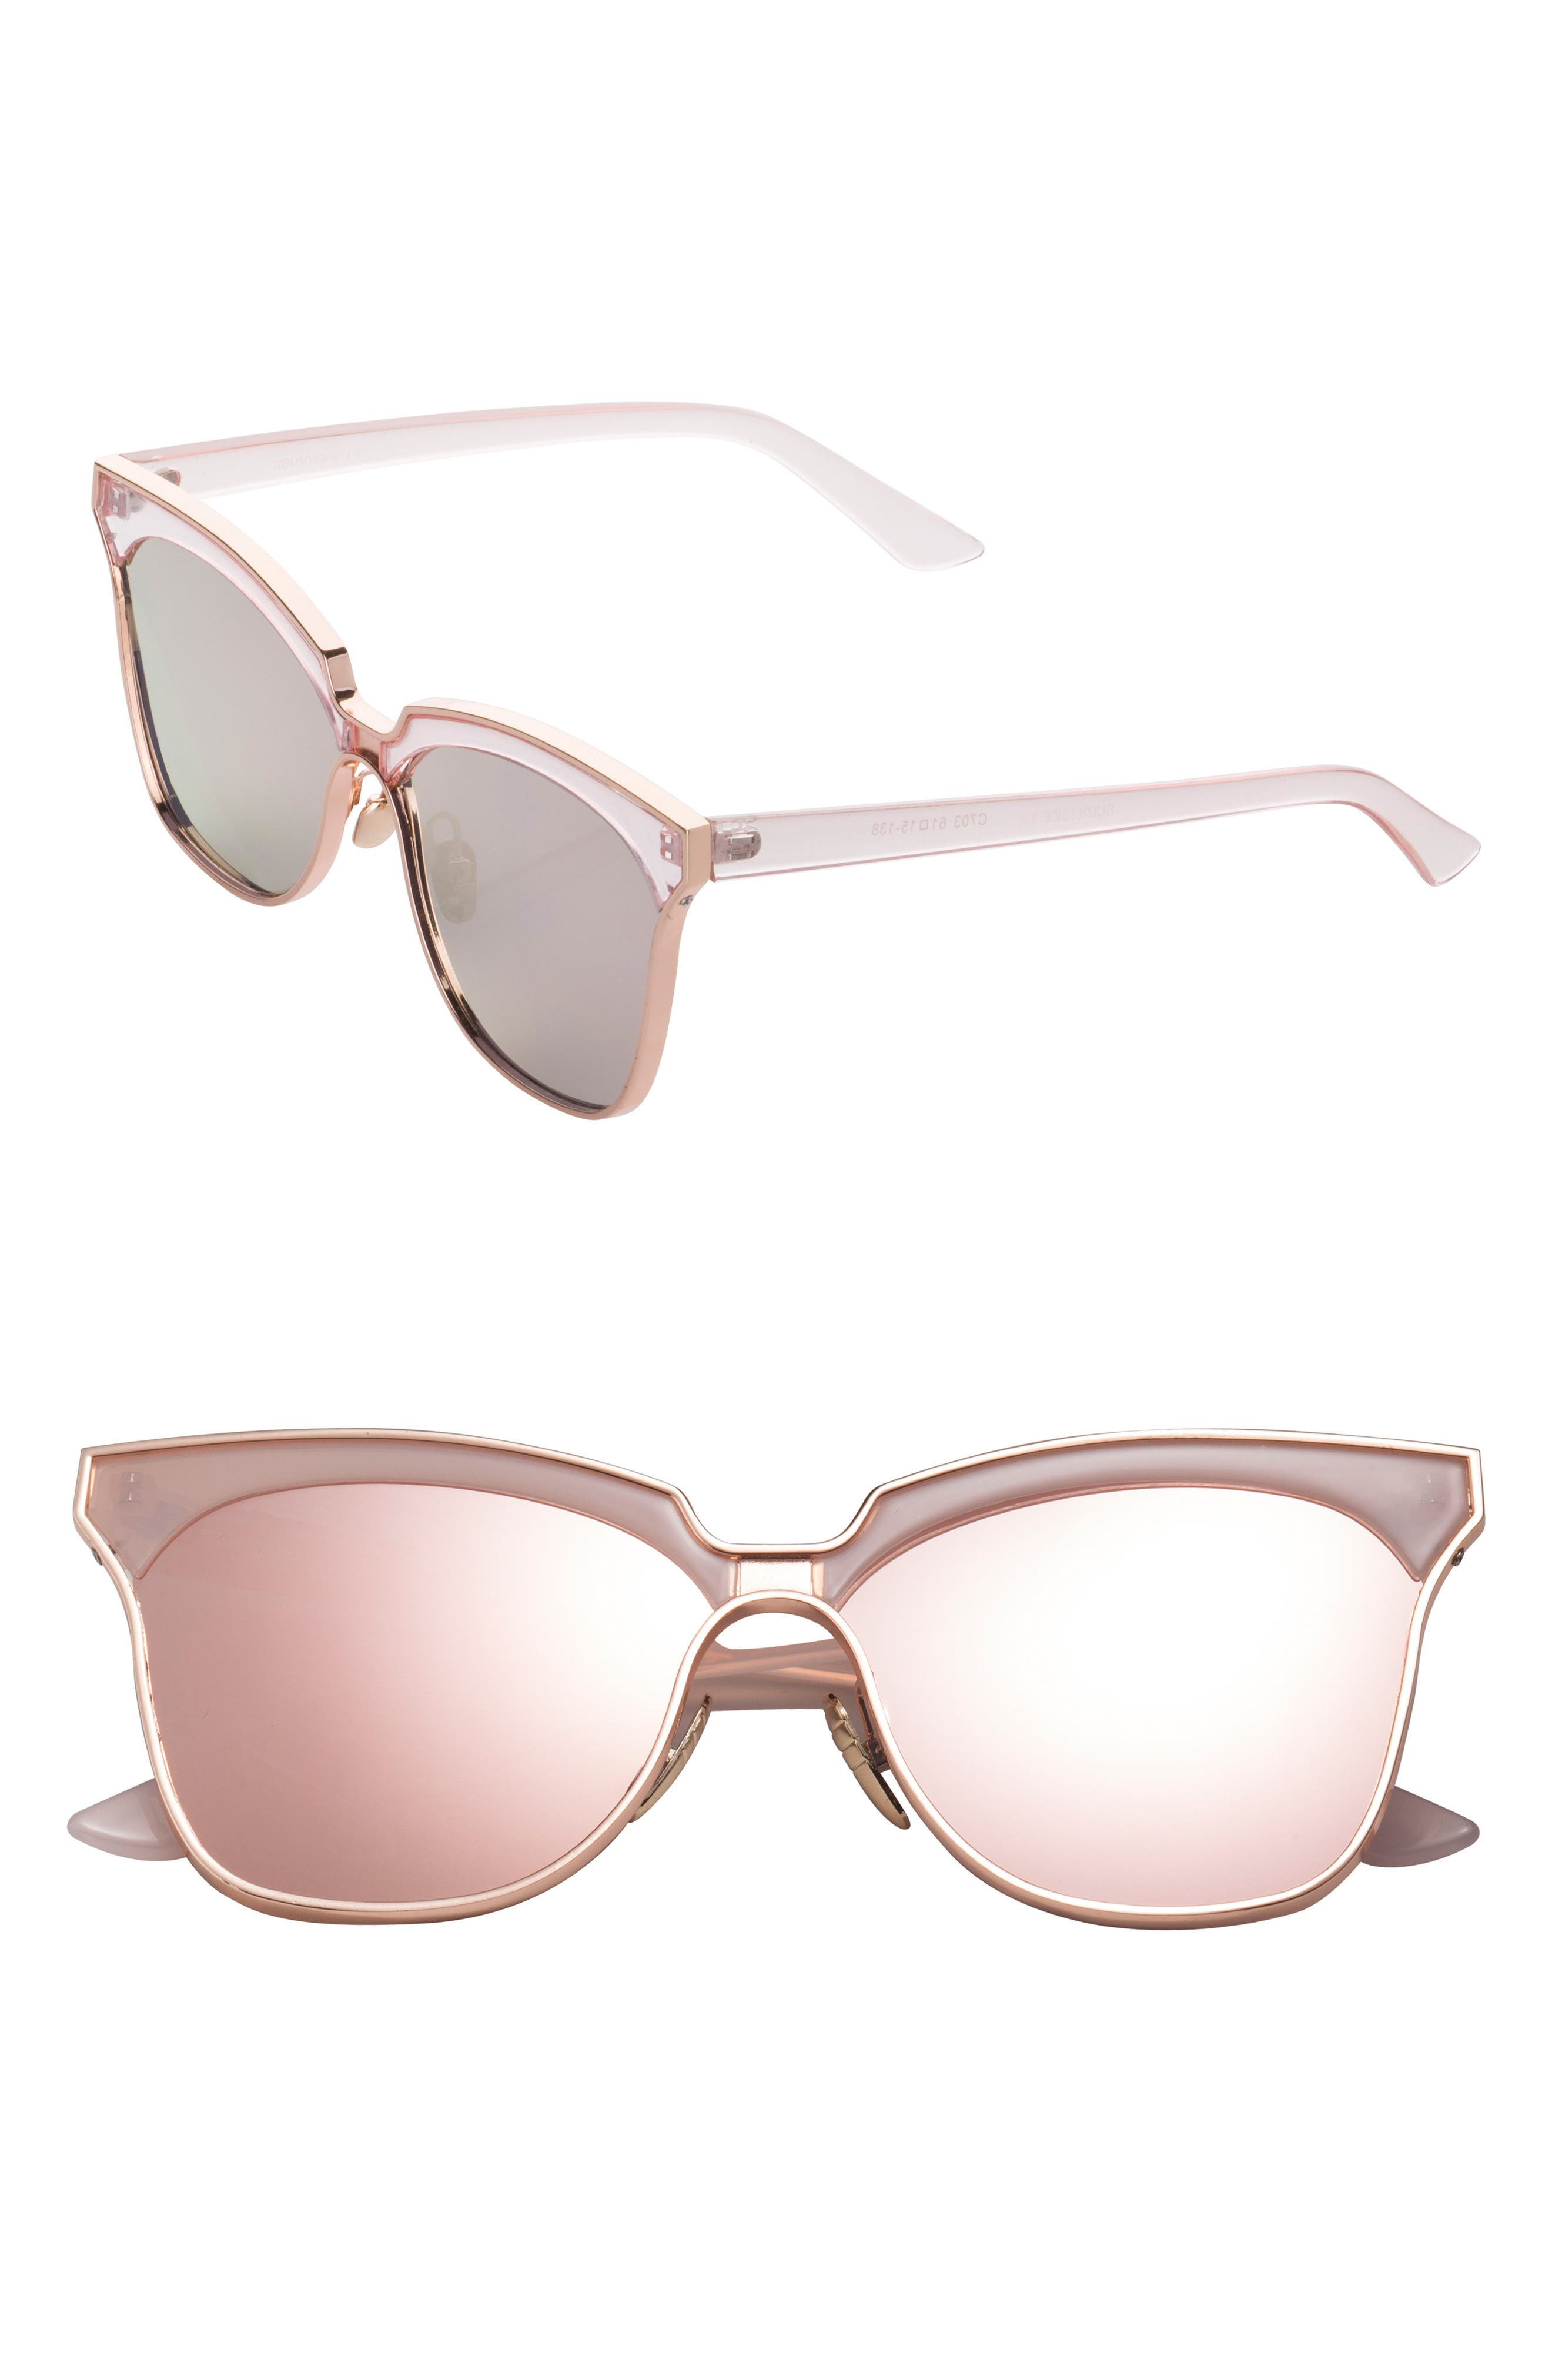 61mm Mirorred Butterfly Sunglasses,                             Main thumbnail 1, color,                             650